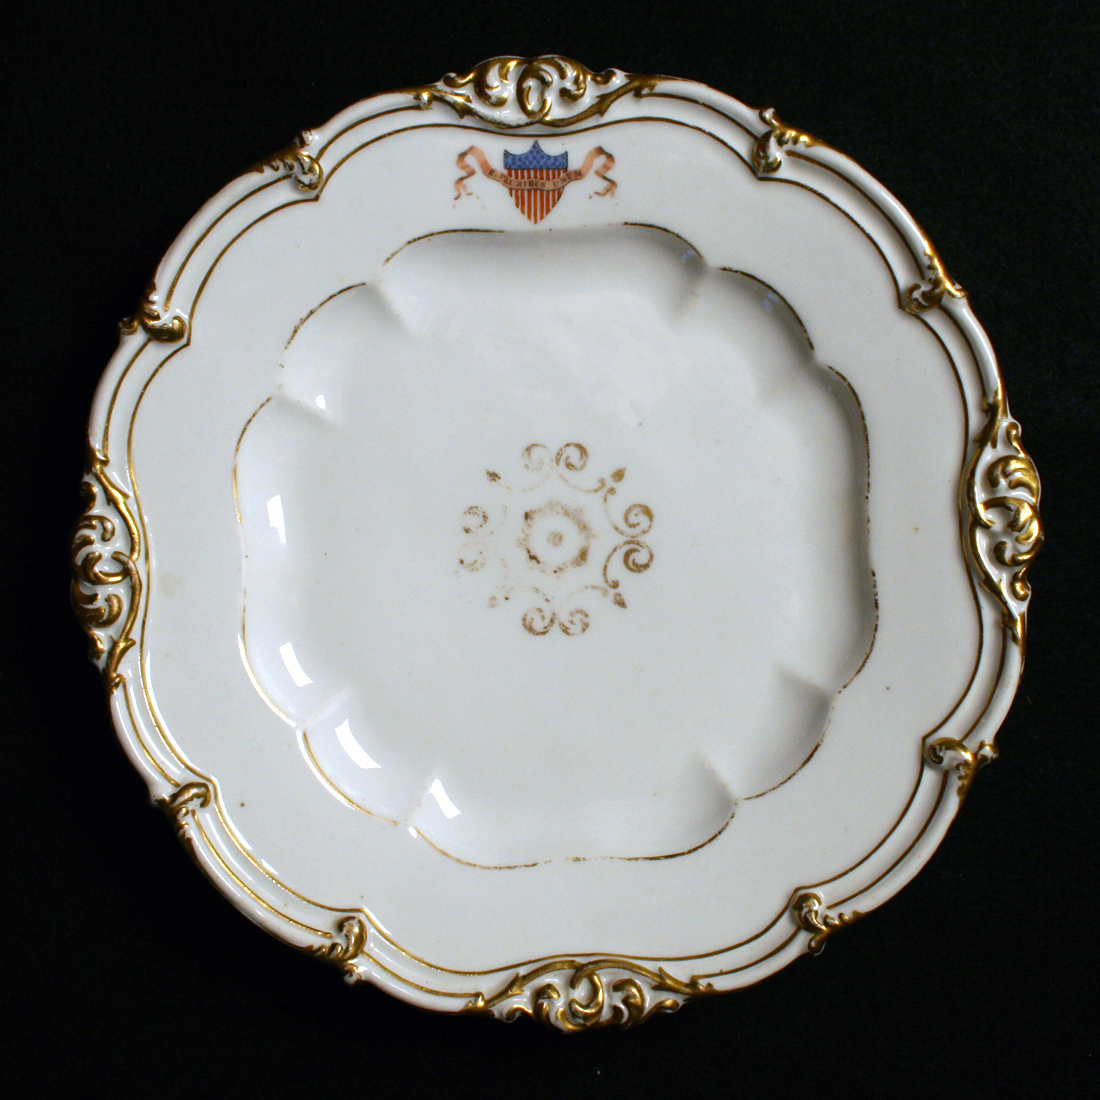 POLK DINNER PLATE|WHITE HOUSE CHINA|POLK CHINA|THE RALEIGH DEGEER AMYX COLLECTION|THE AMERICAN HERITAGE COLLECTION|